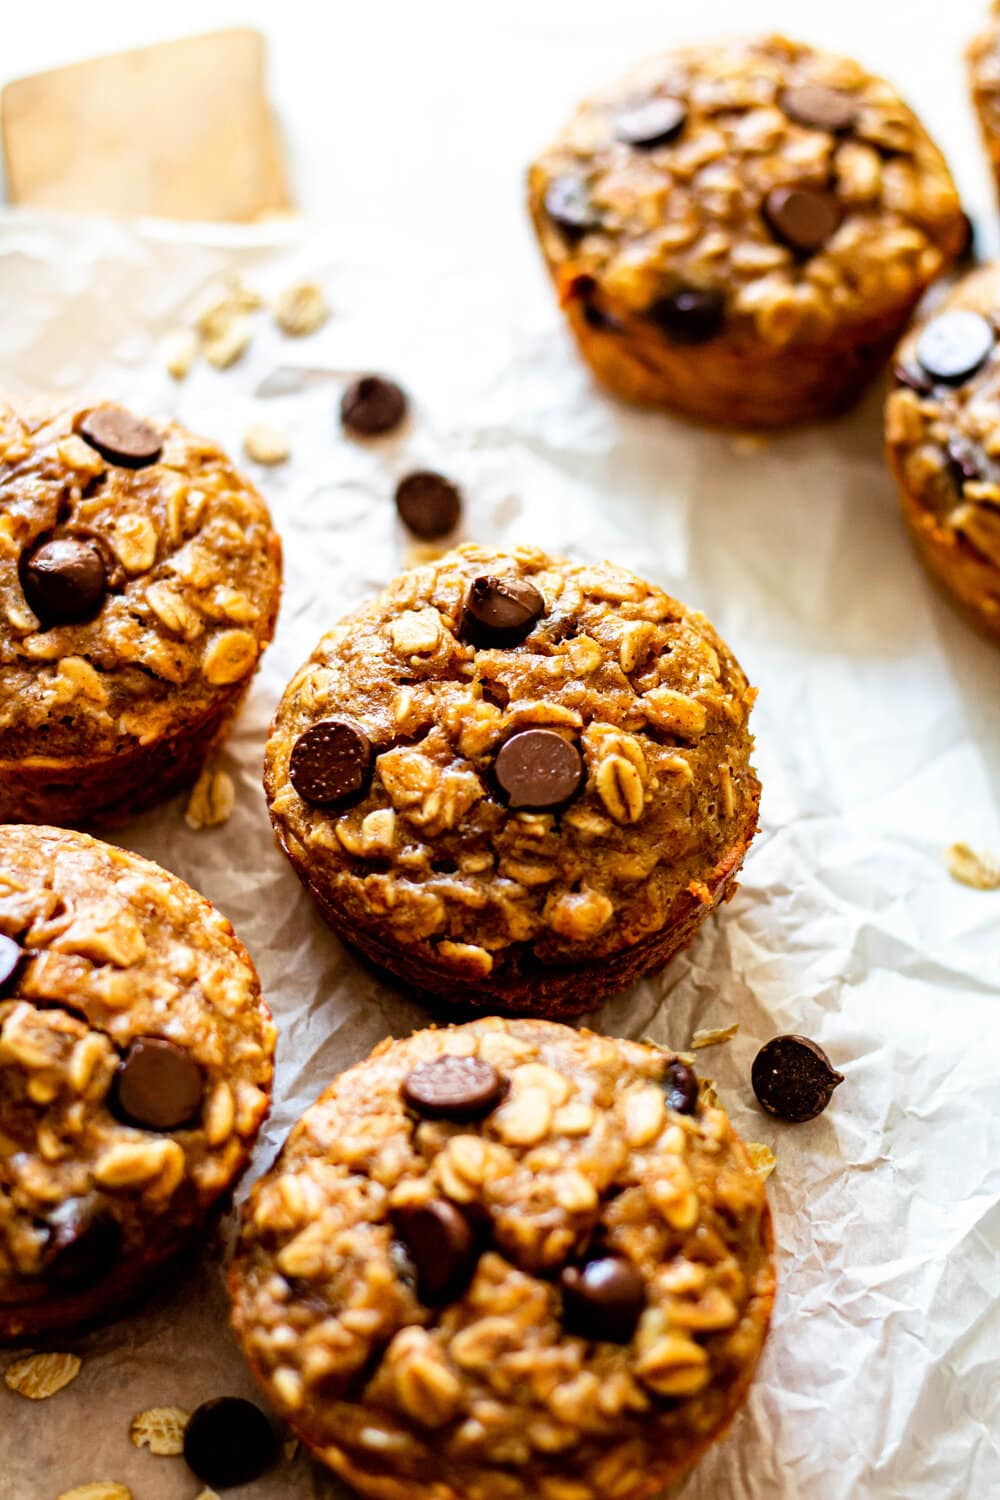 Peanut Butter Banana Baked Oatmeal Cups on white parchment paper with chocolate chips scattered around